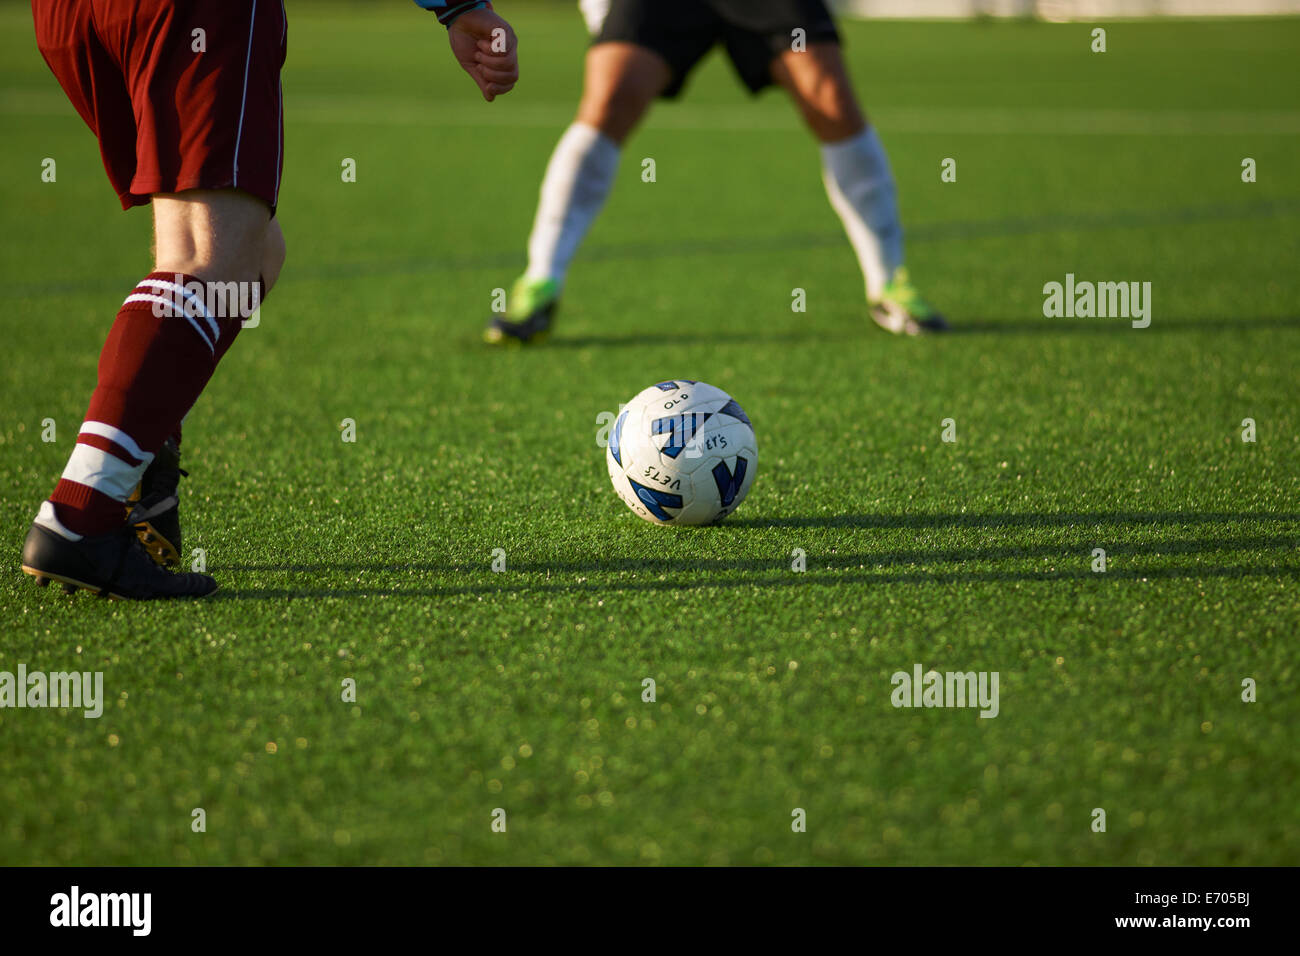 Football players during game Stock Photo